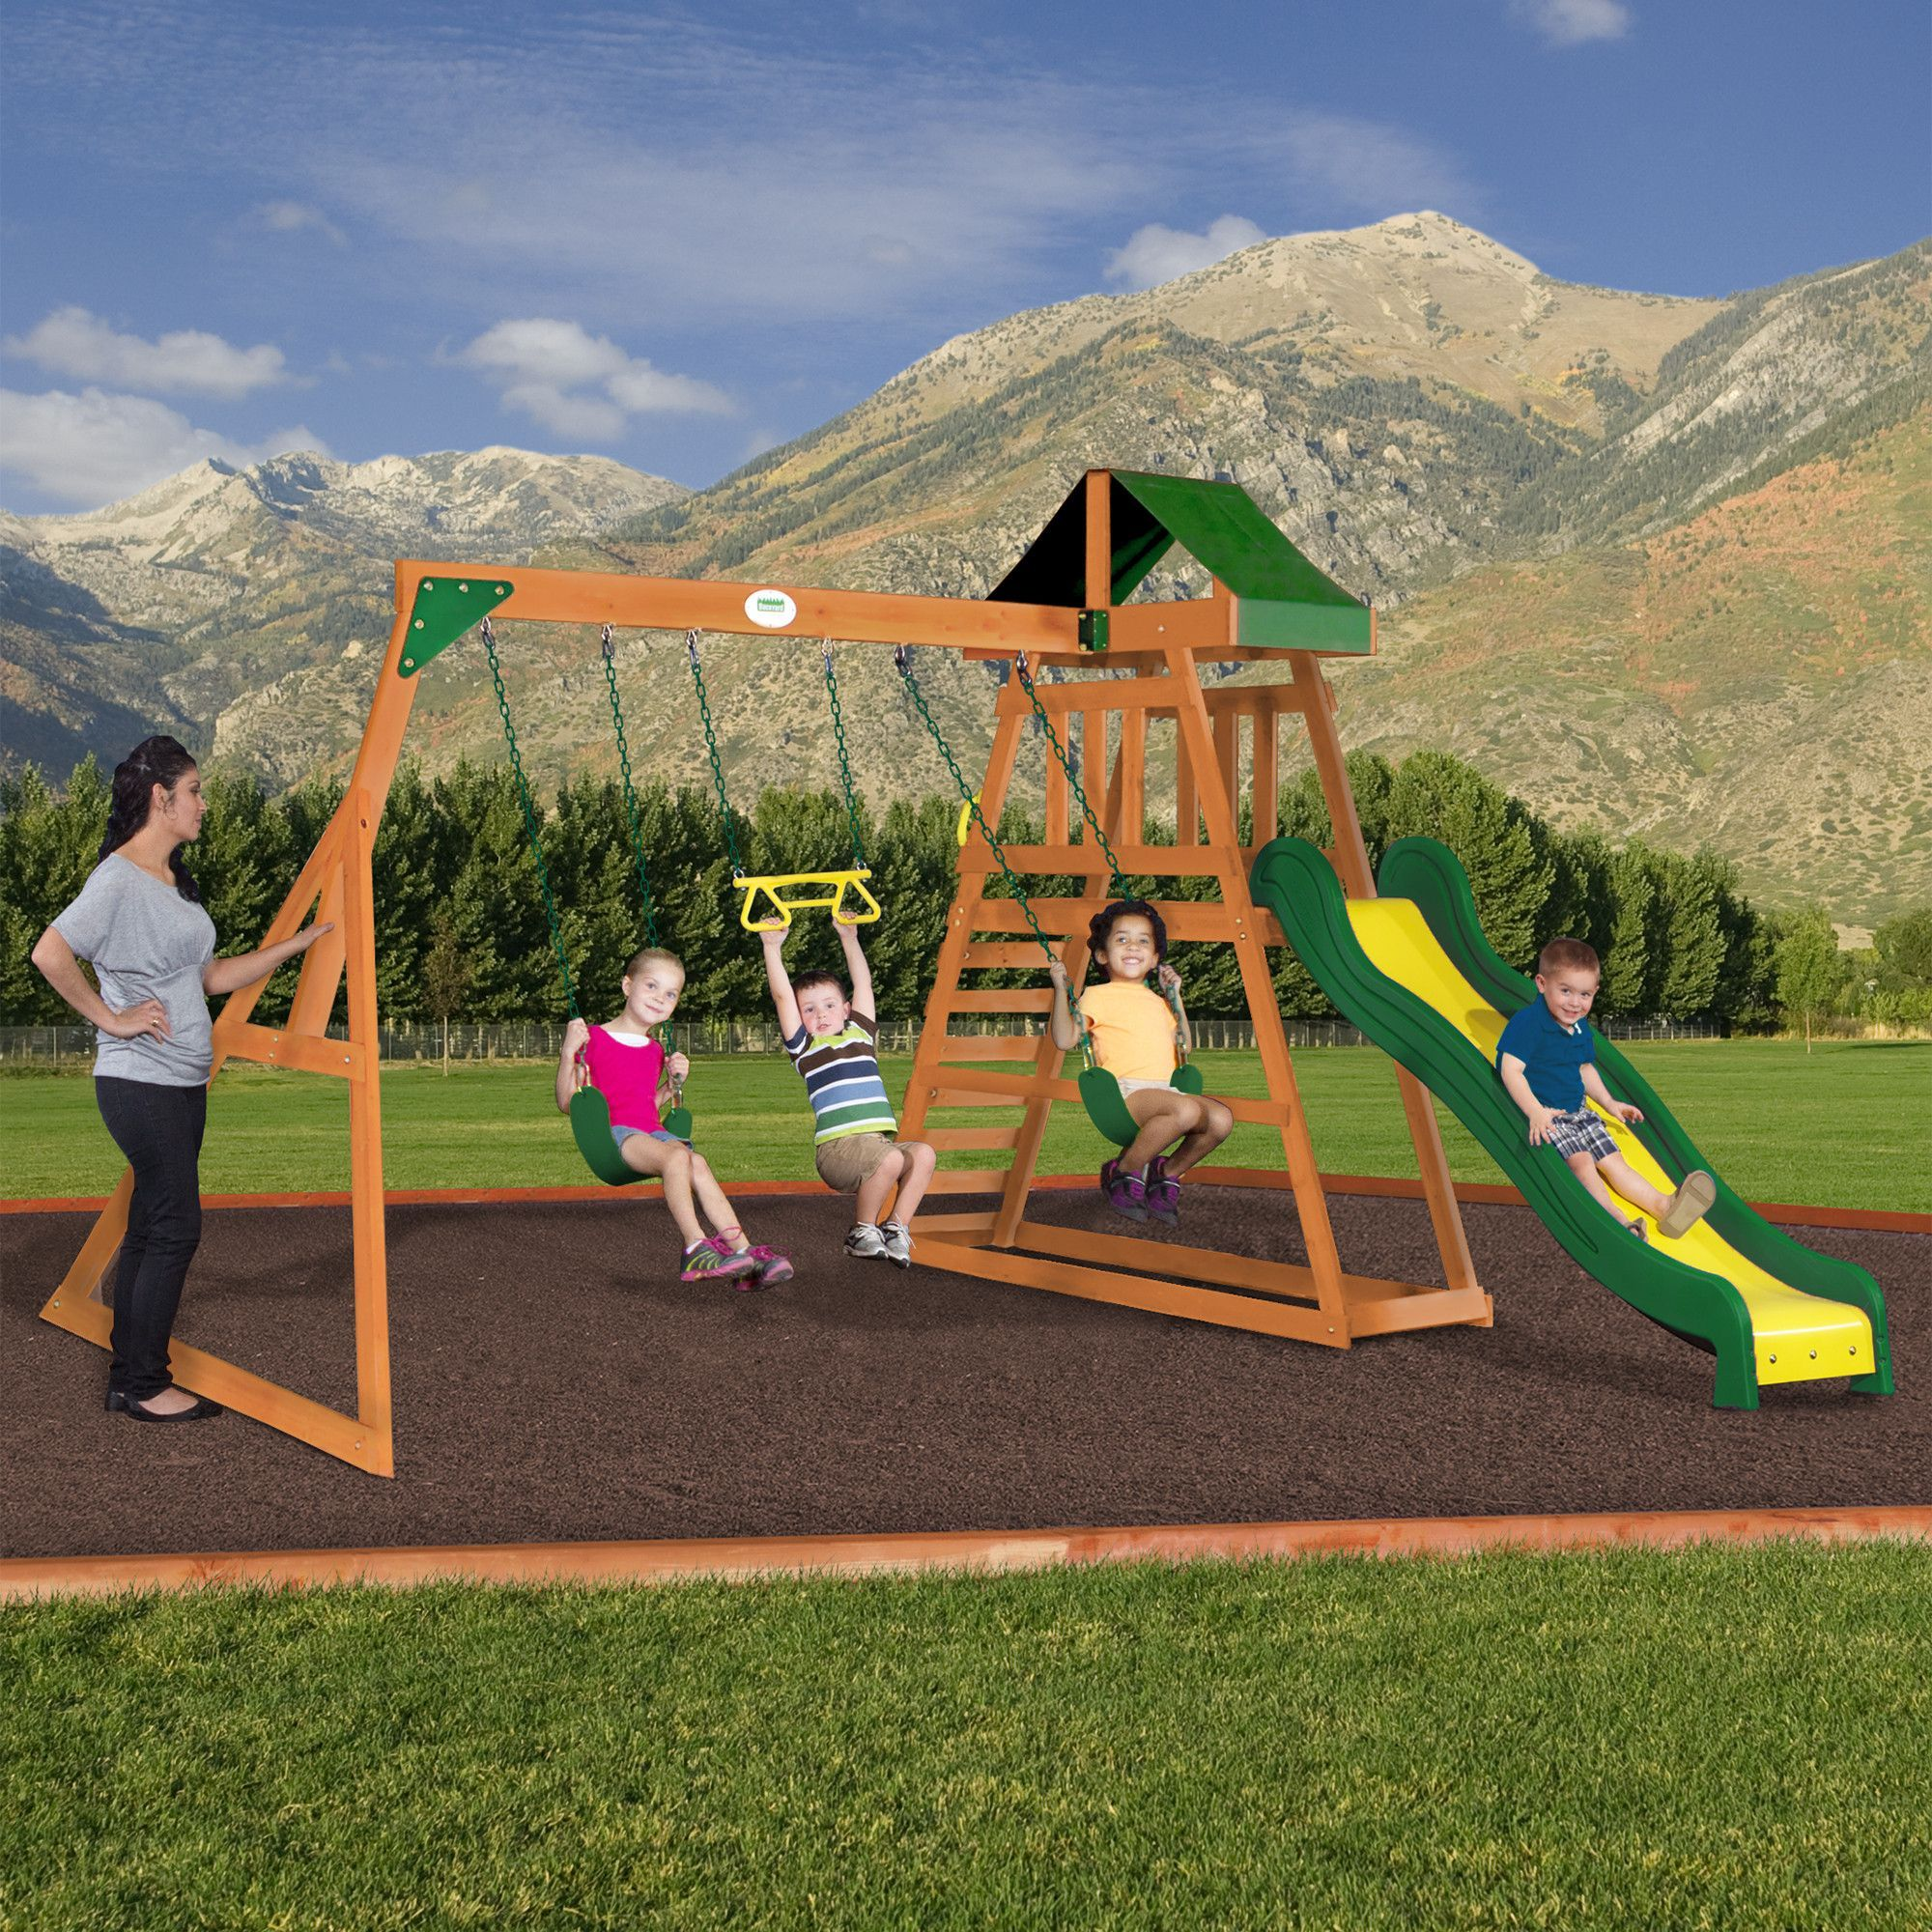 Prescott Wooden Swing Set | Backyard playset, Outdoor ...